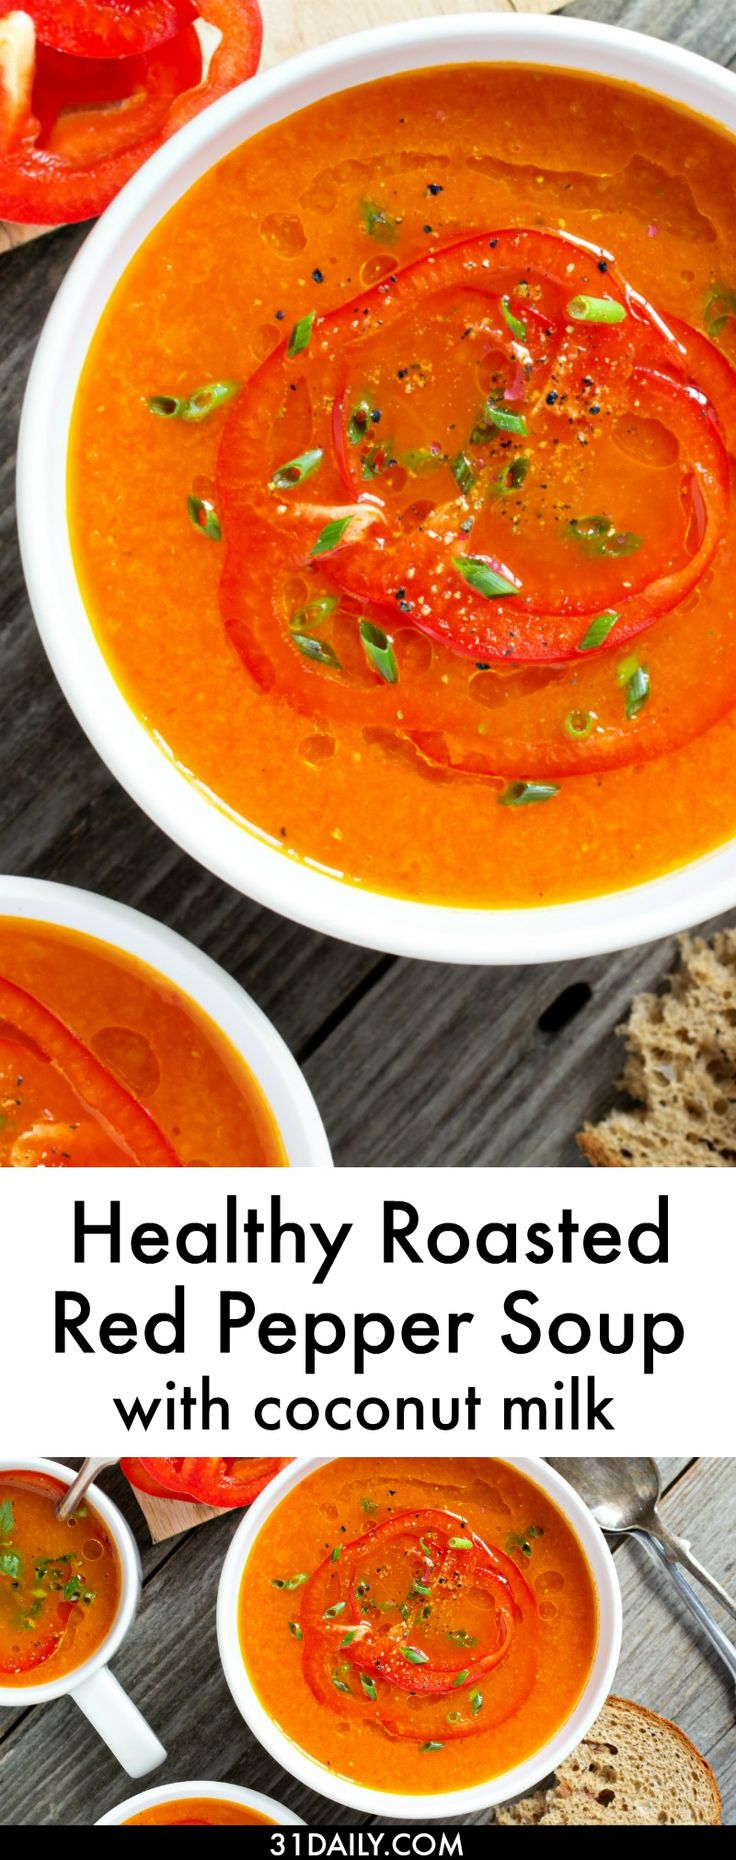 Healthy Tomato and Roasted Red Pepper Soup with Coconut Milk | 31Daily.com